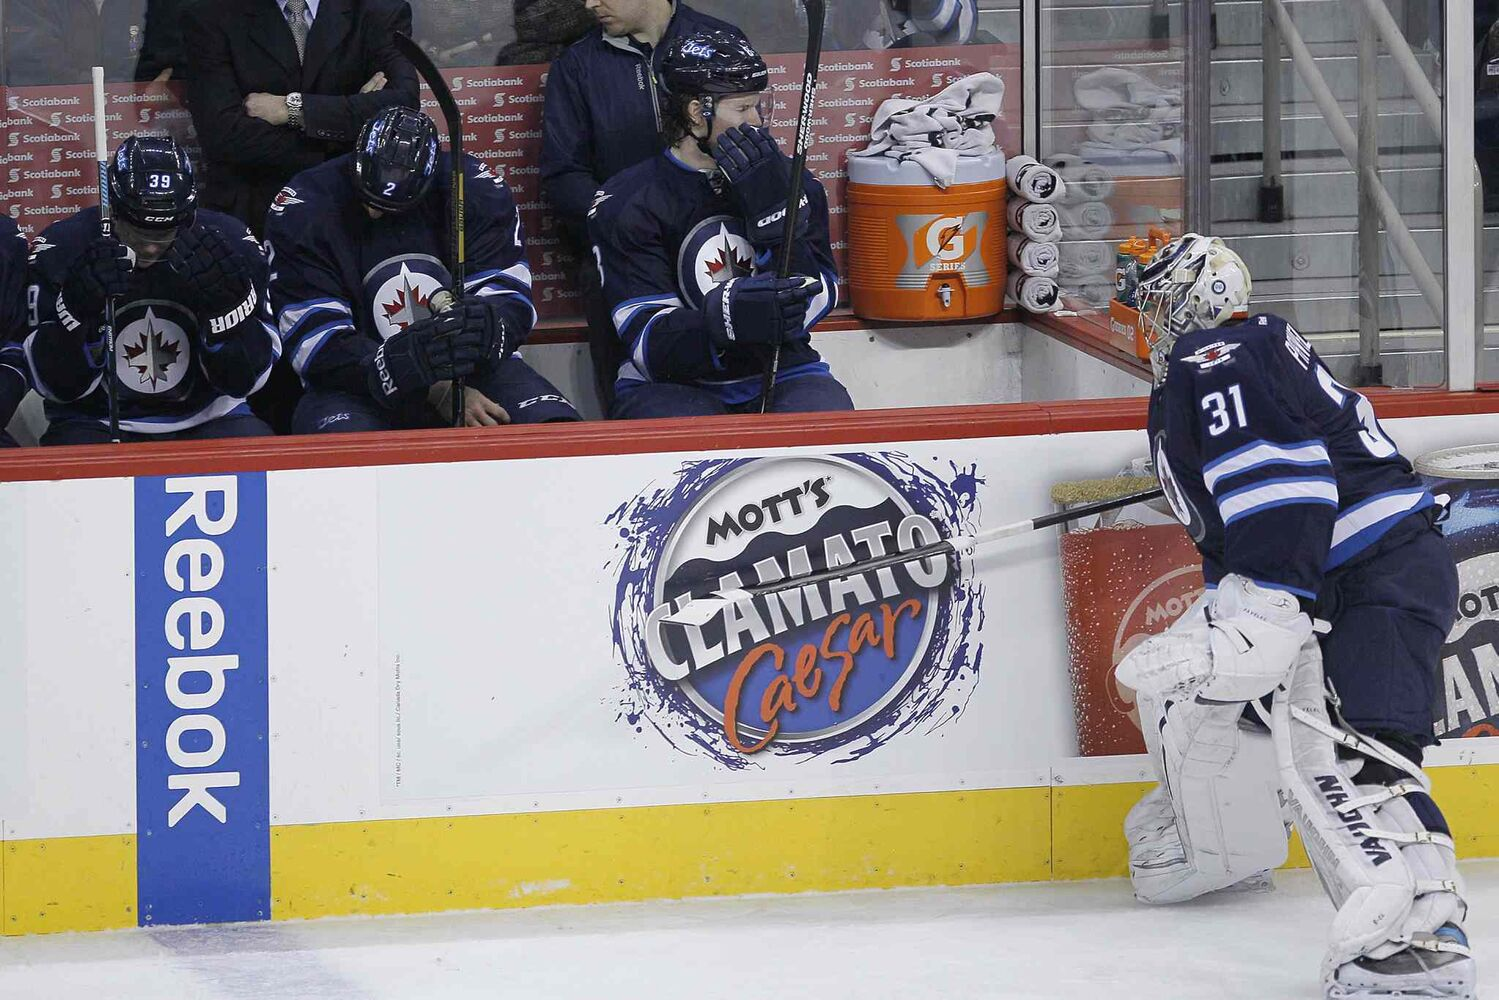 Winnipeg Jets goaltender Ondrej Pavelec (right) slams his stick against the boards in anger after being pulled during the first period. (JOHN WOODS / THE CANADIAN PRESS)